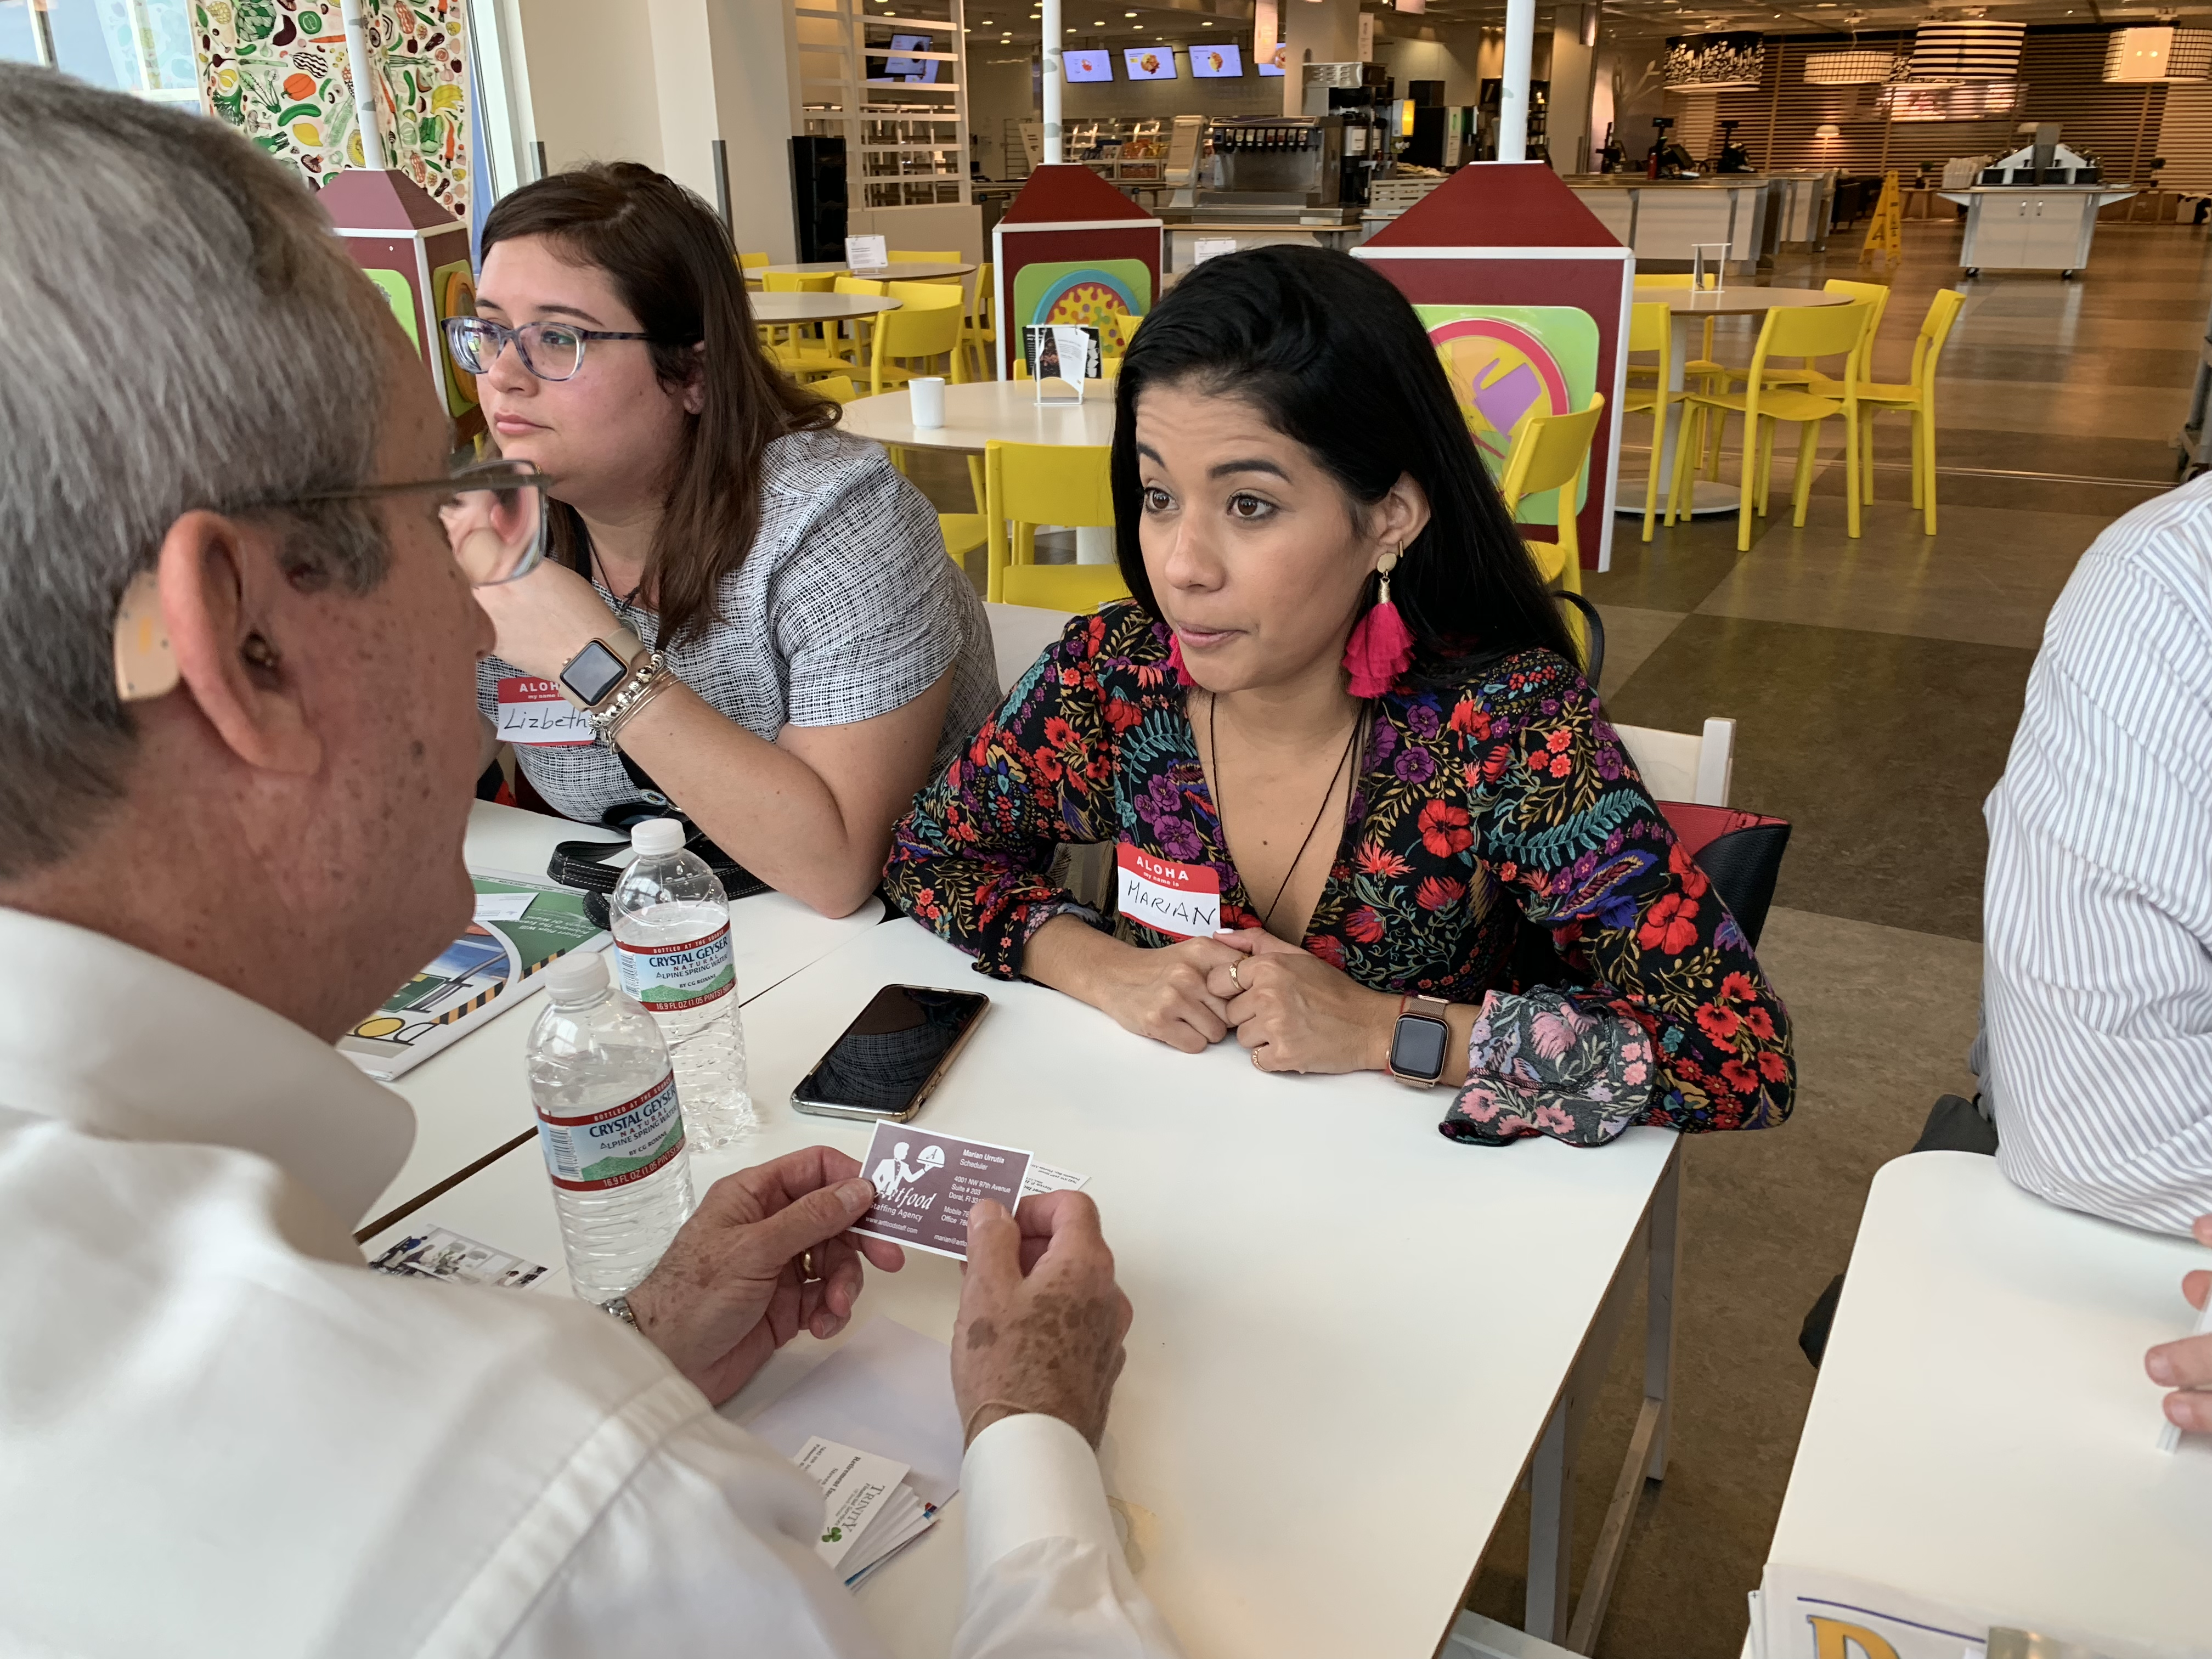 Doral Chamber of Commerce IKEA Speed Networking Event, member passing cards with another member and talking about business.